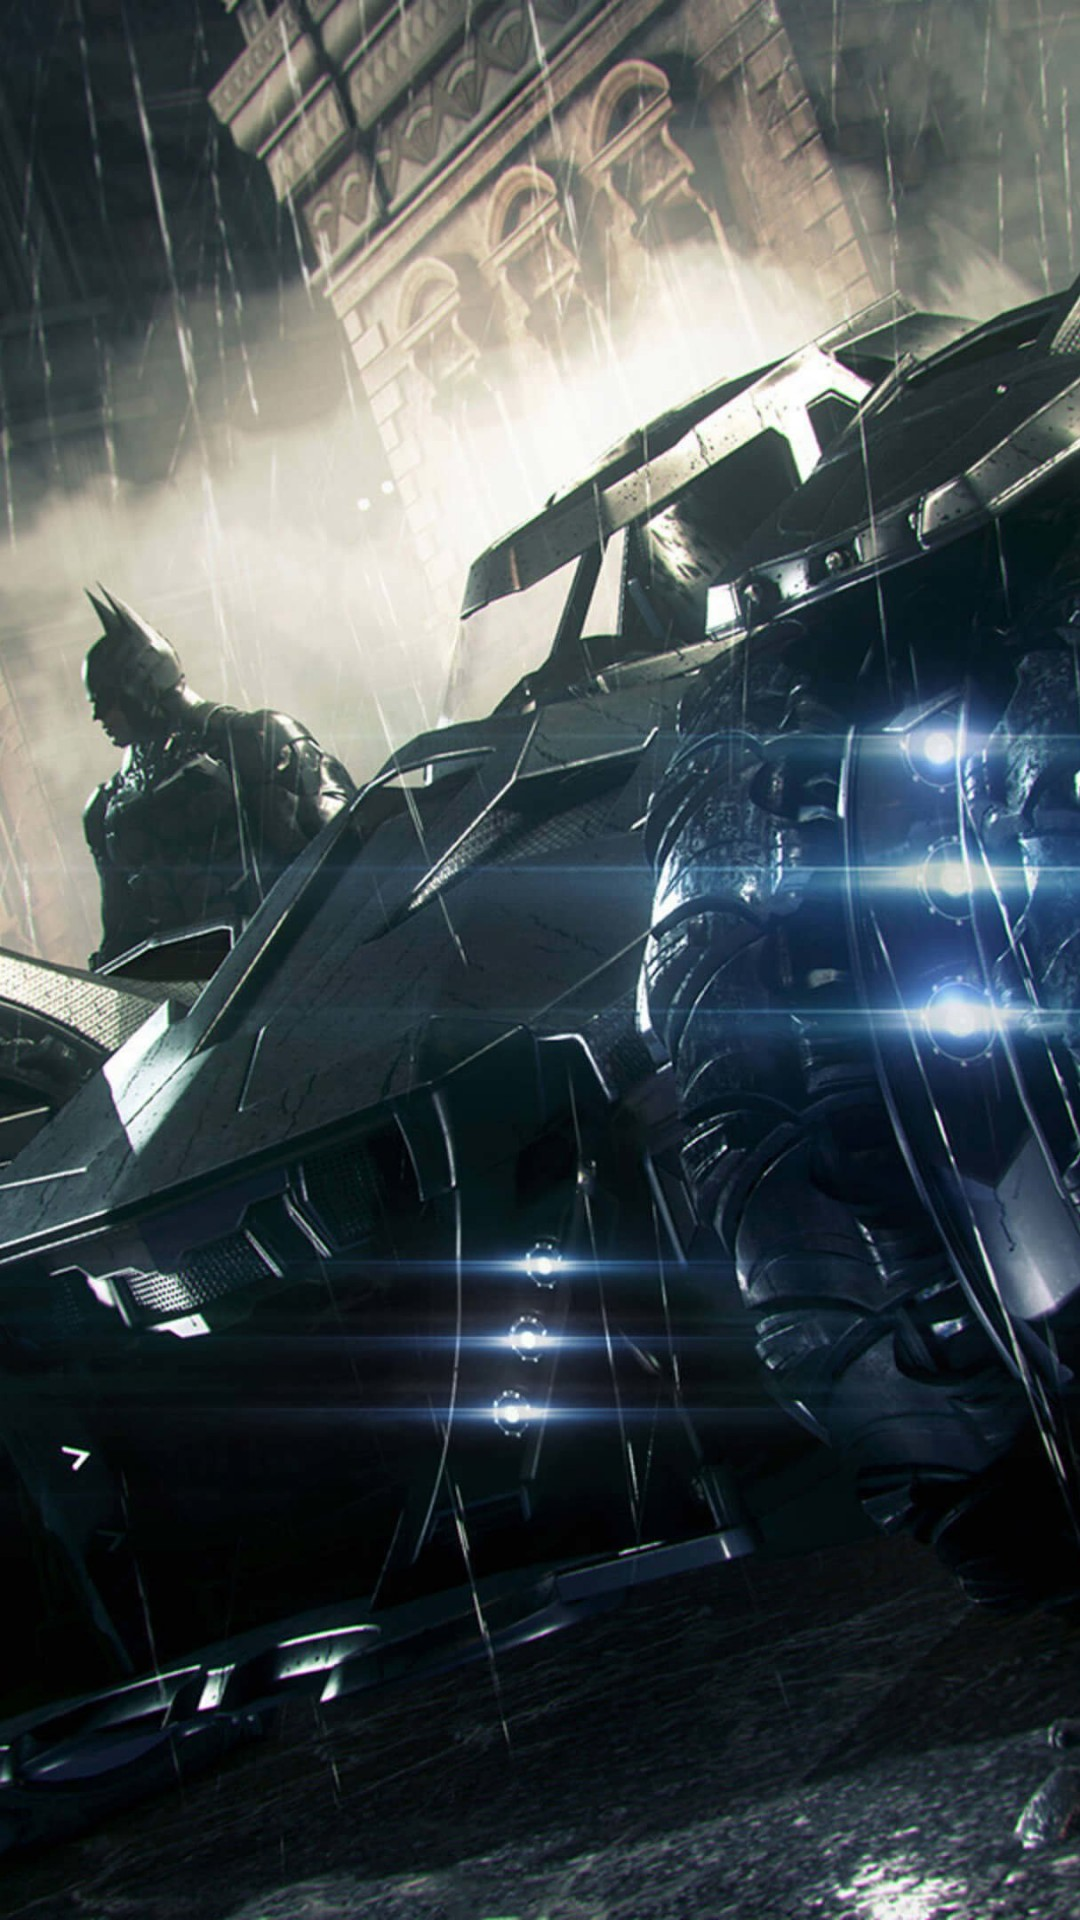 Batmobile - Batman Arkham Knight Wallpaper for SONY Xperia Z2